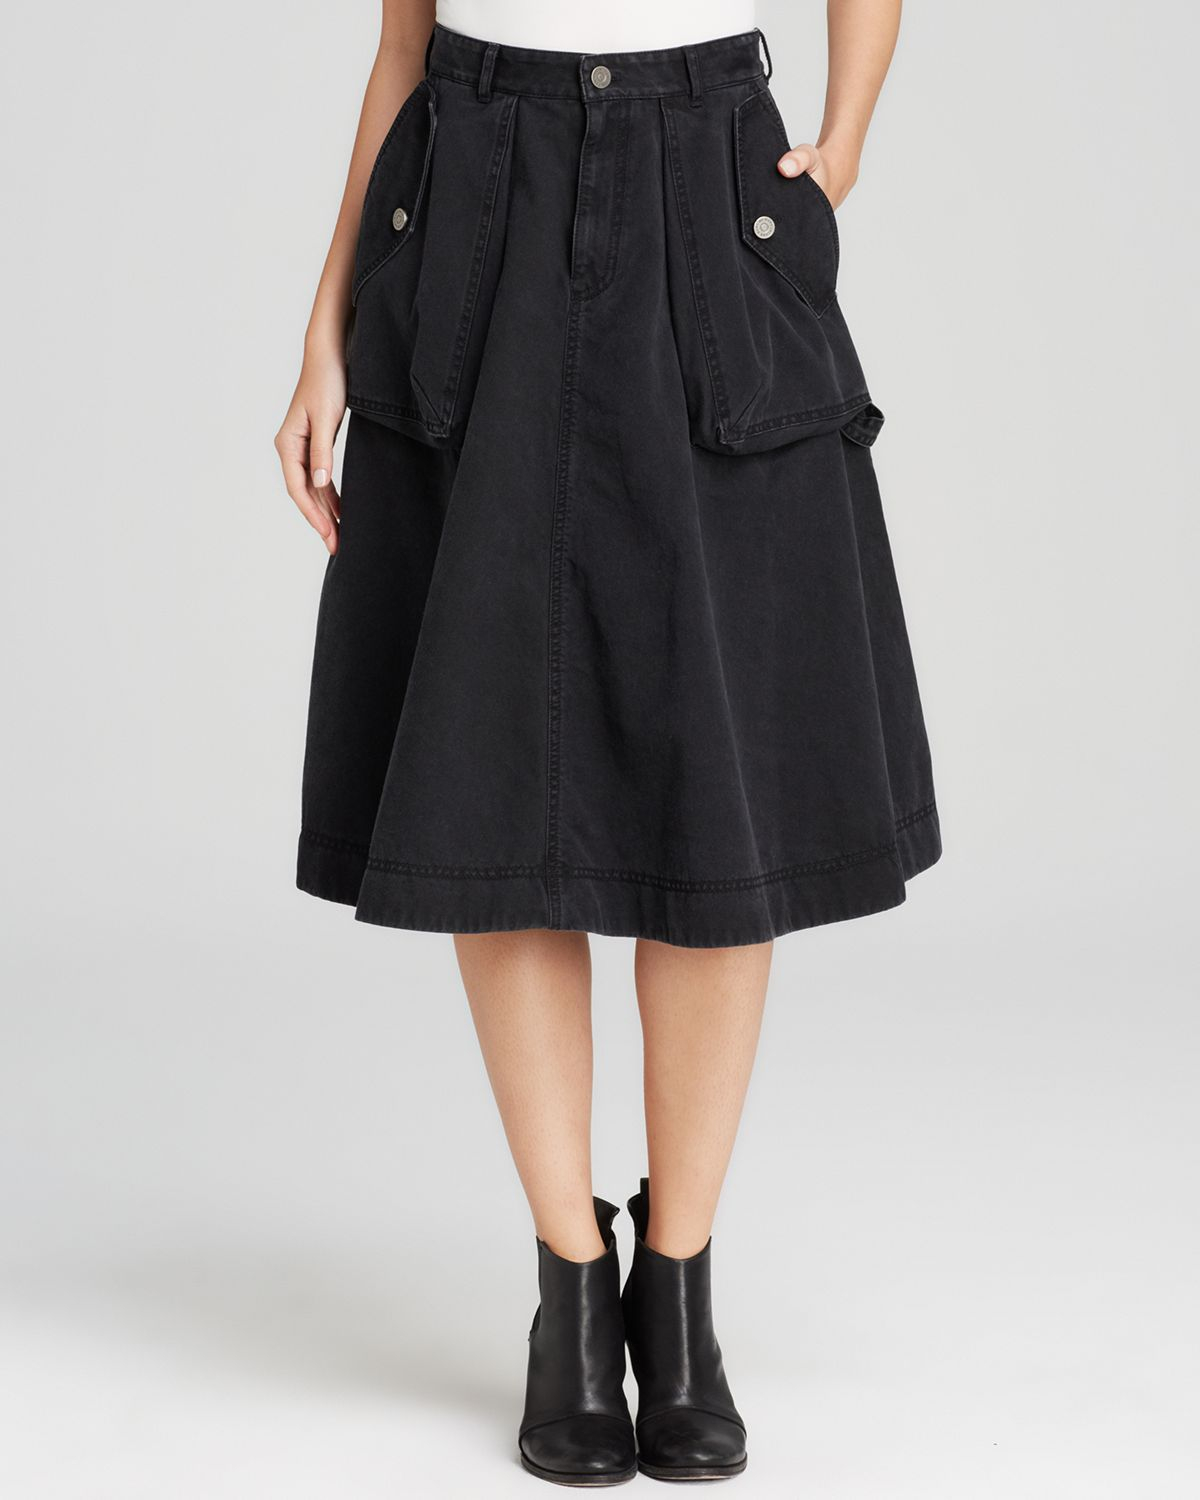 Black A Line Denim Skirt 2017 | Dress Ala - Part 543